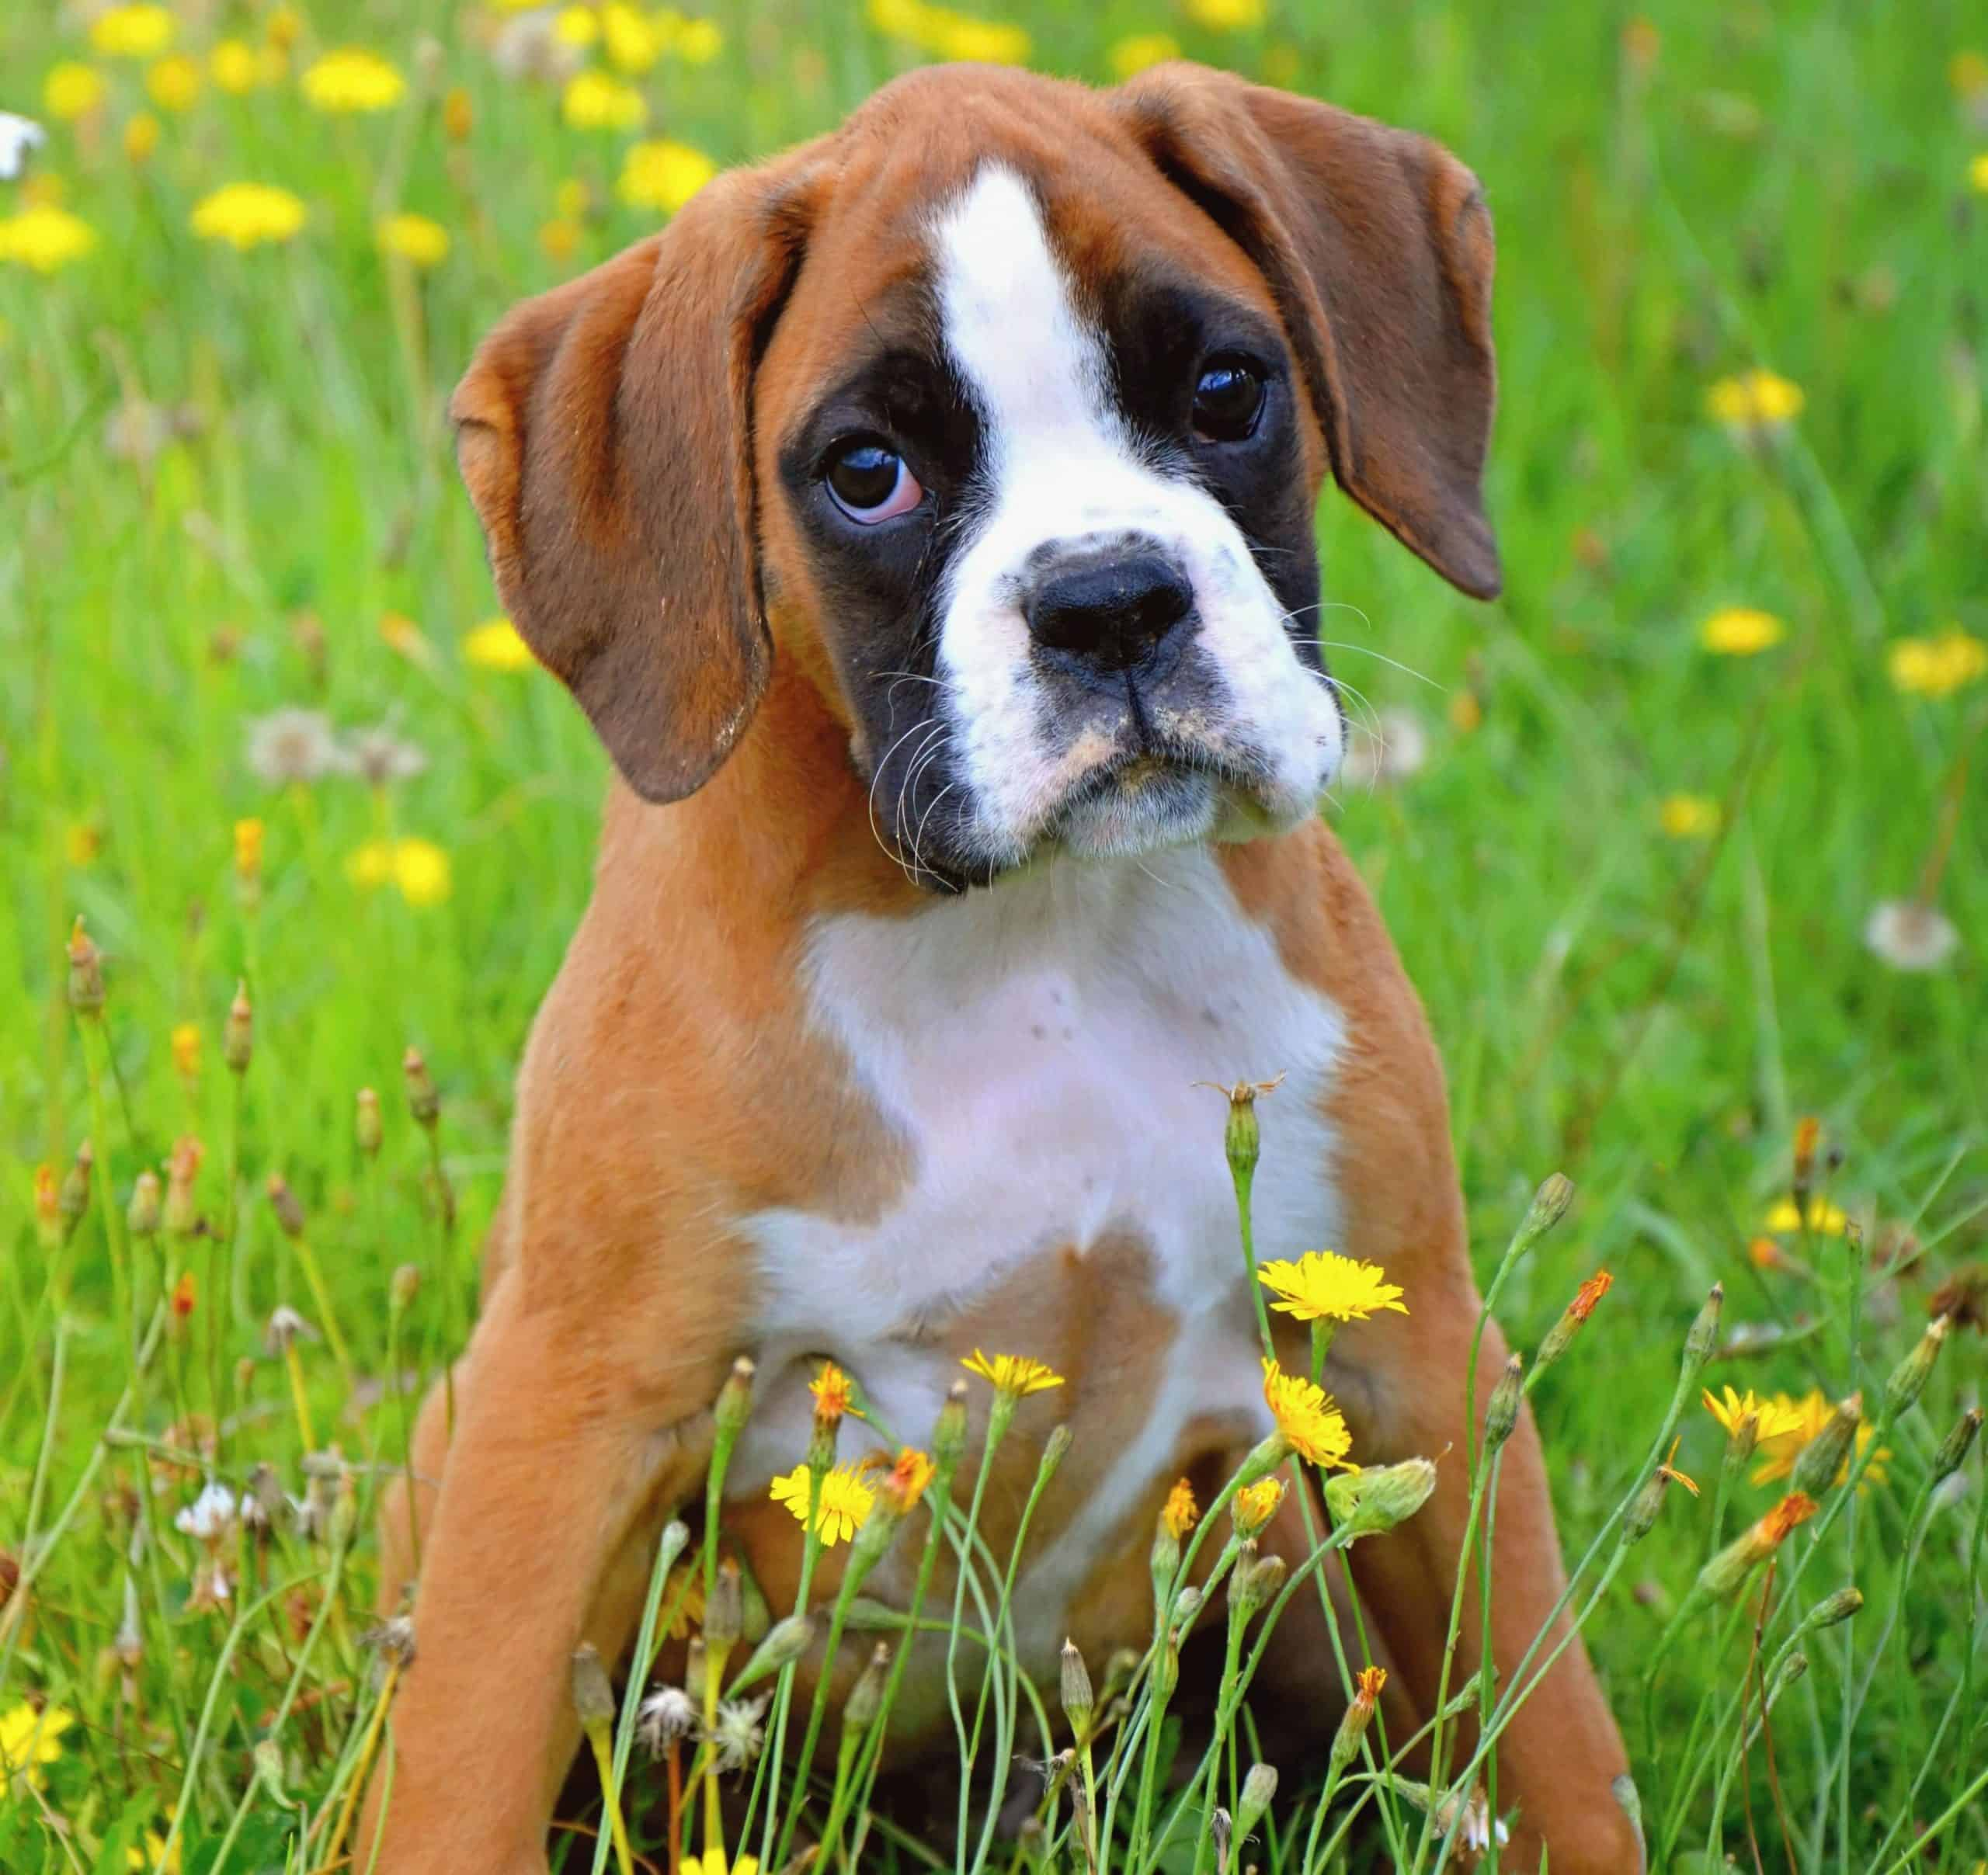 Happy boxer puppy sits in a field. One of the most active dog breeds, Boxers are known not only for their sporty builds but for their silly and fun-loving personalities.